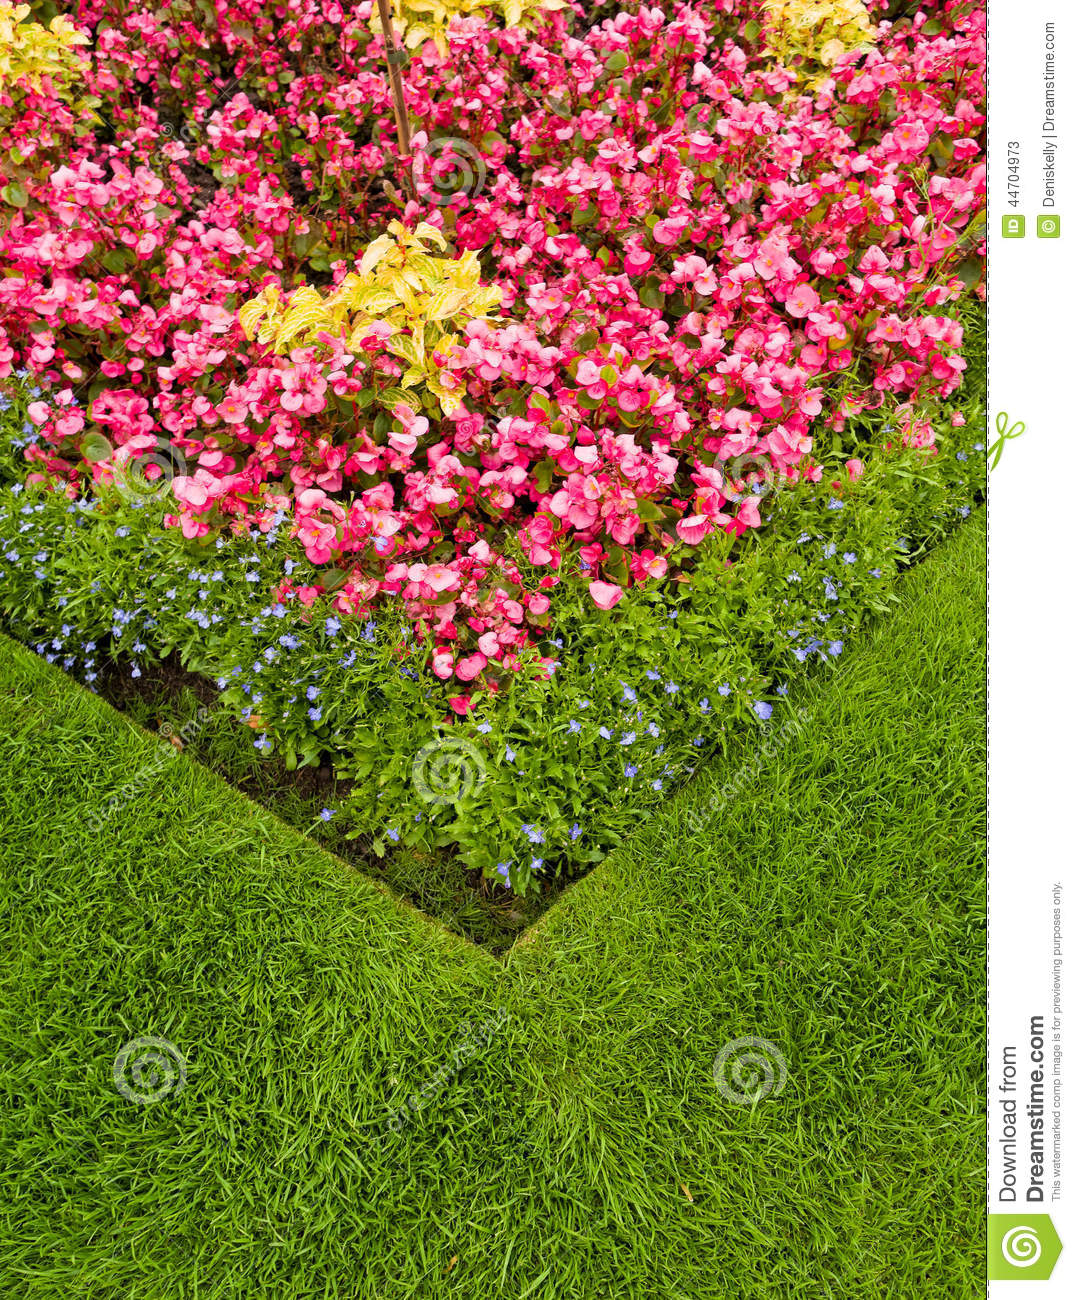 Colourful Garden Flower Bed Stock Photo Image 44704973